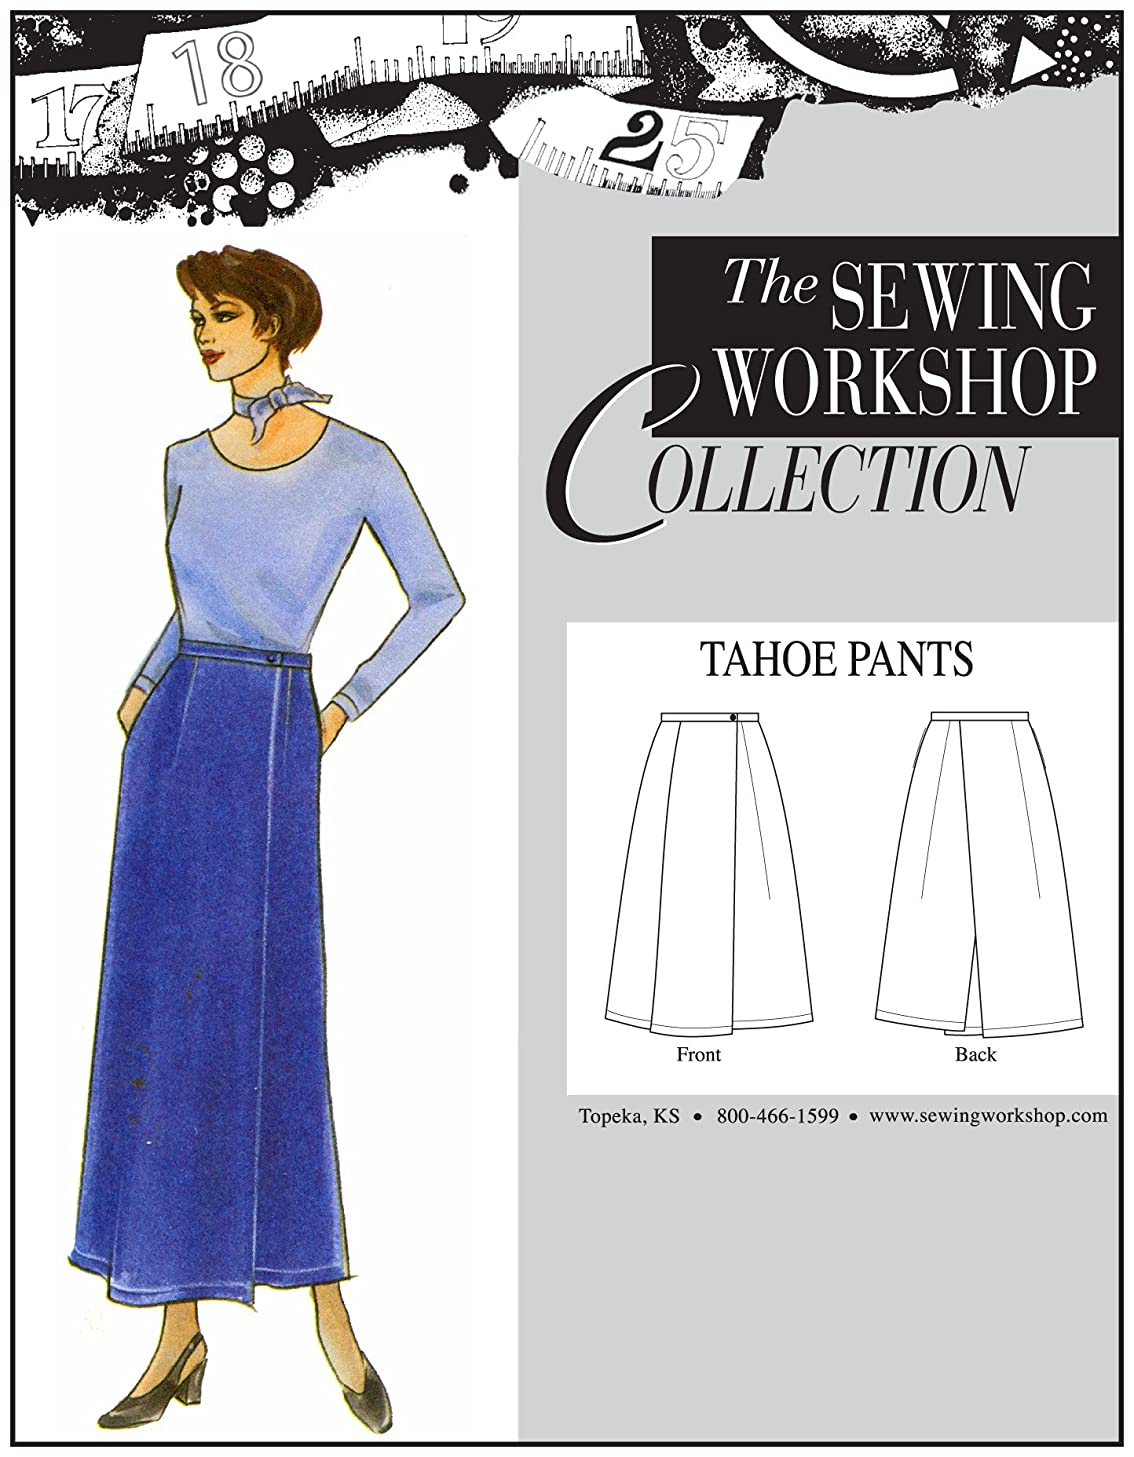 The Sewing Workshop Tahoe Pants Sewing Template, Multi-Size